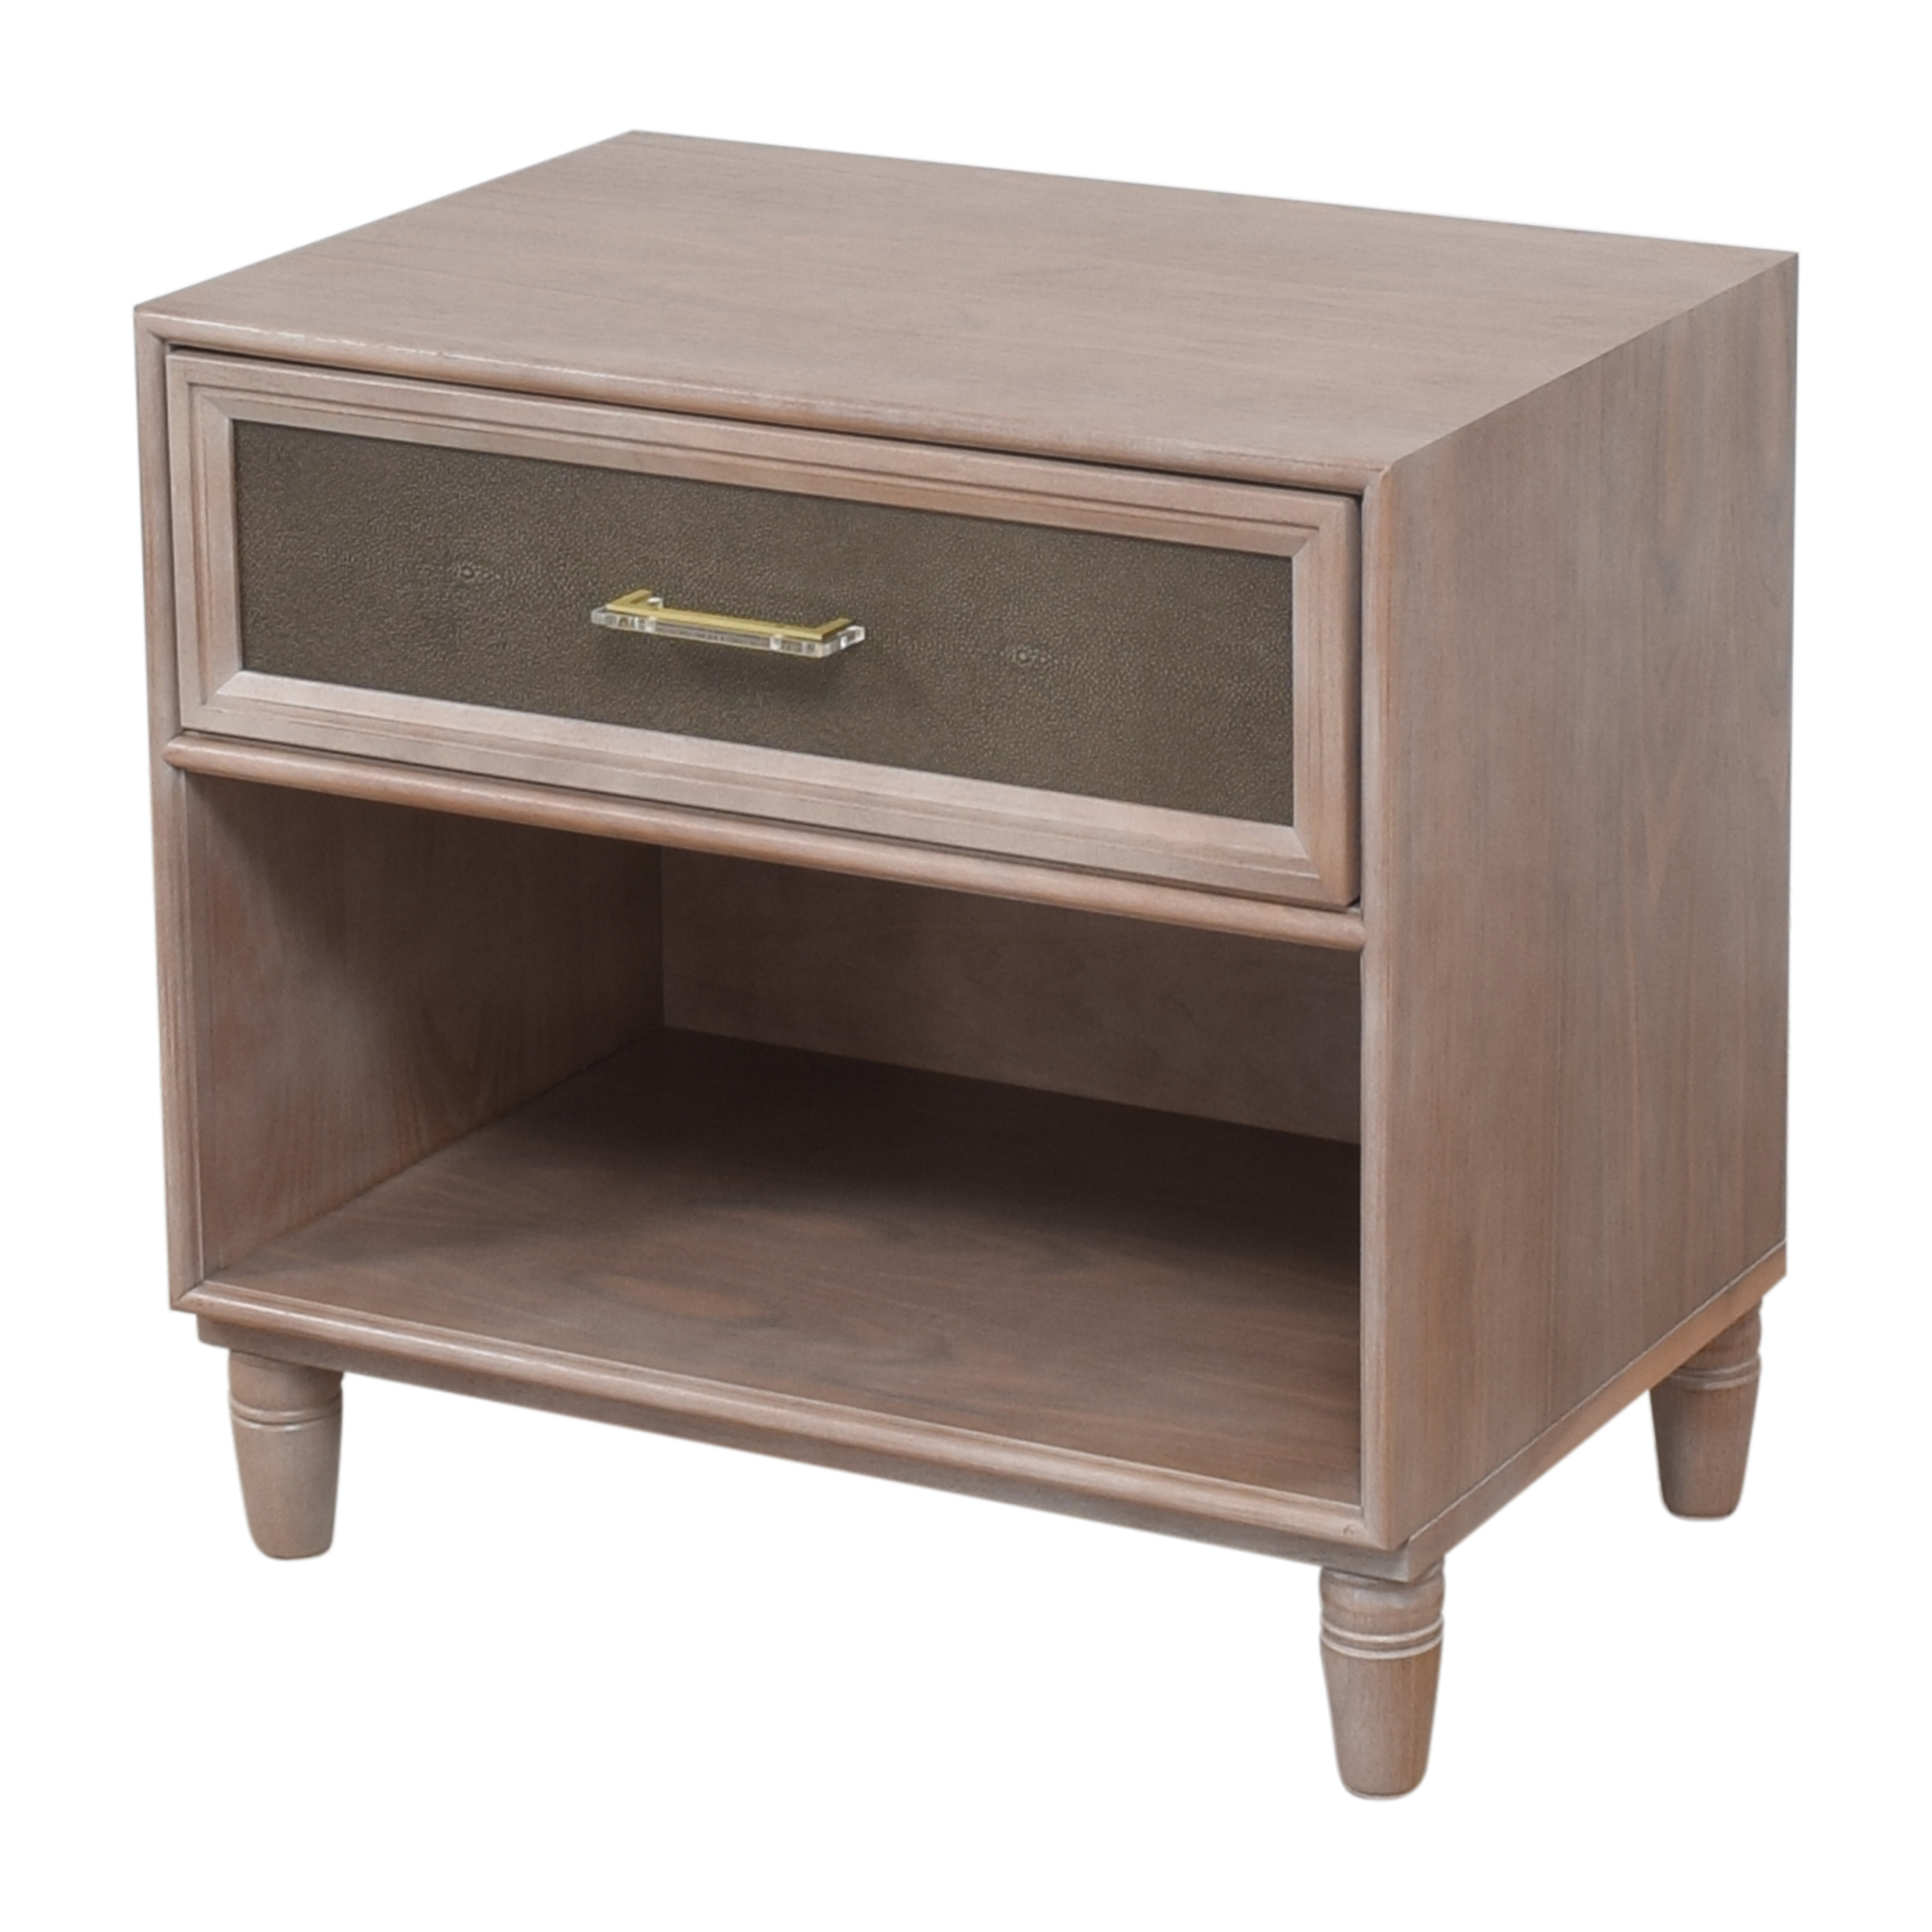 The New Traditionalists The New Traditionalists Single Drawer End Table End Tables